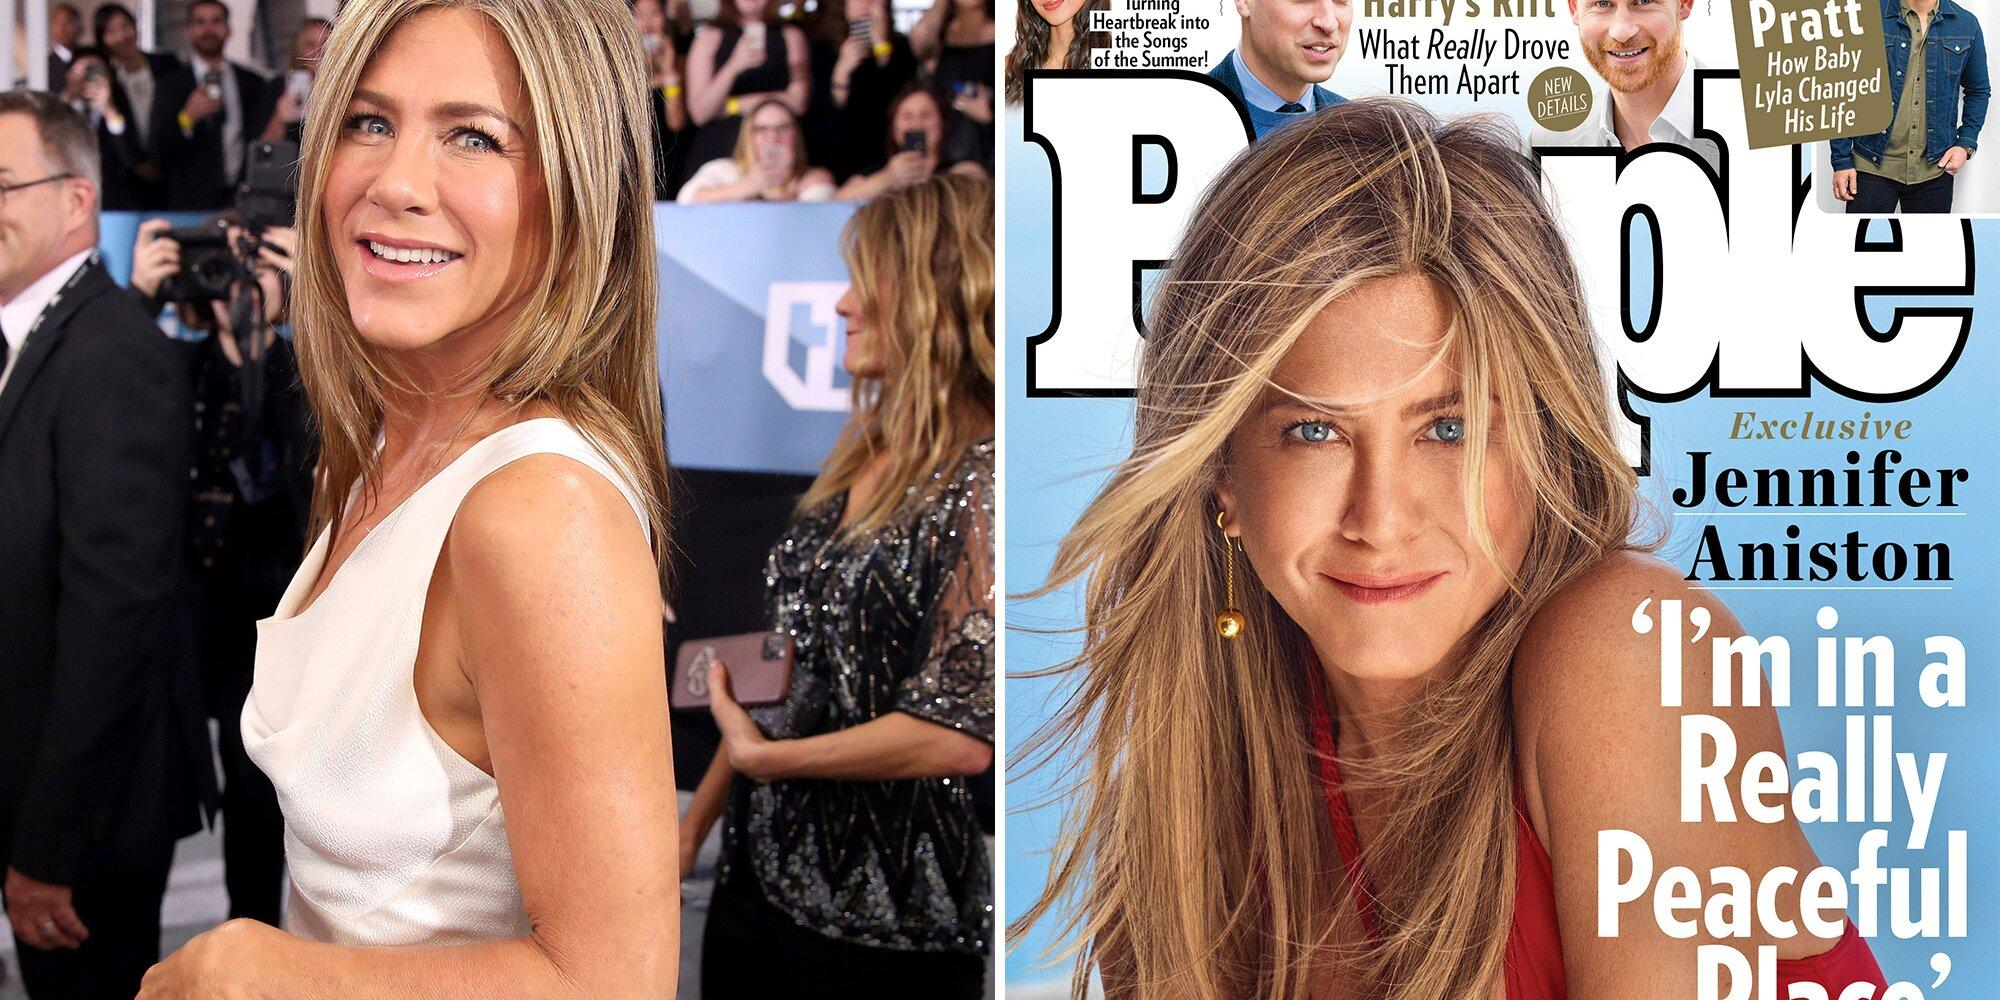 Jennifer Aniston Opens Up About Her Life Now: 'I'm in a Really Peaceful Place'